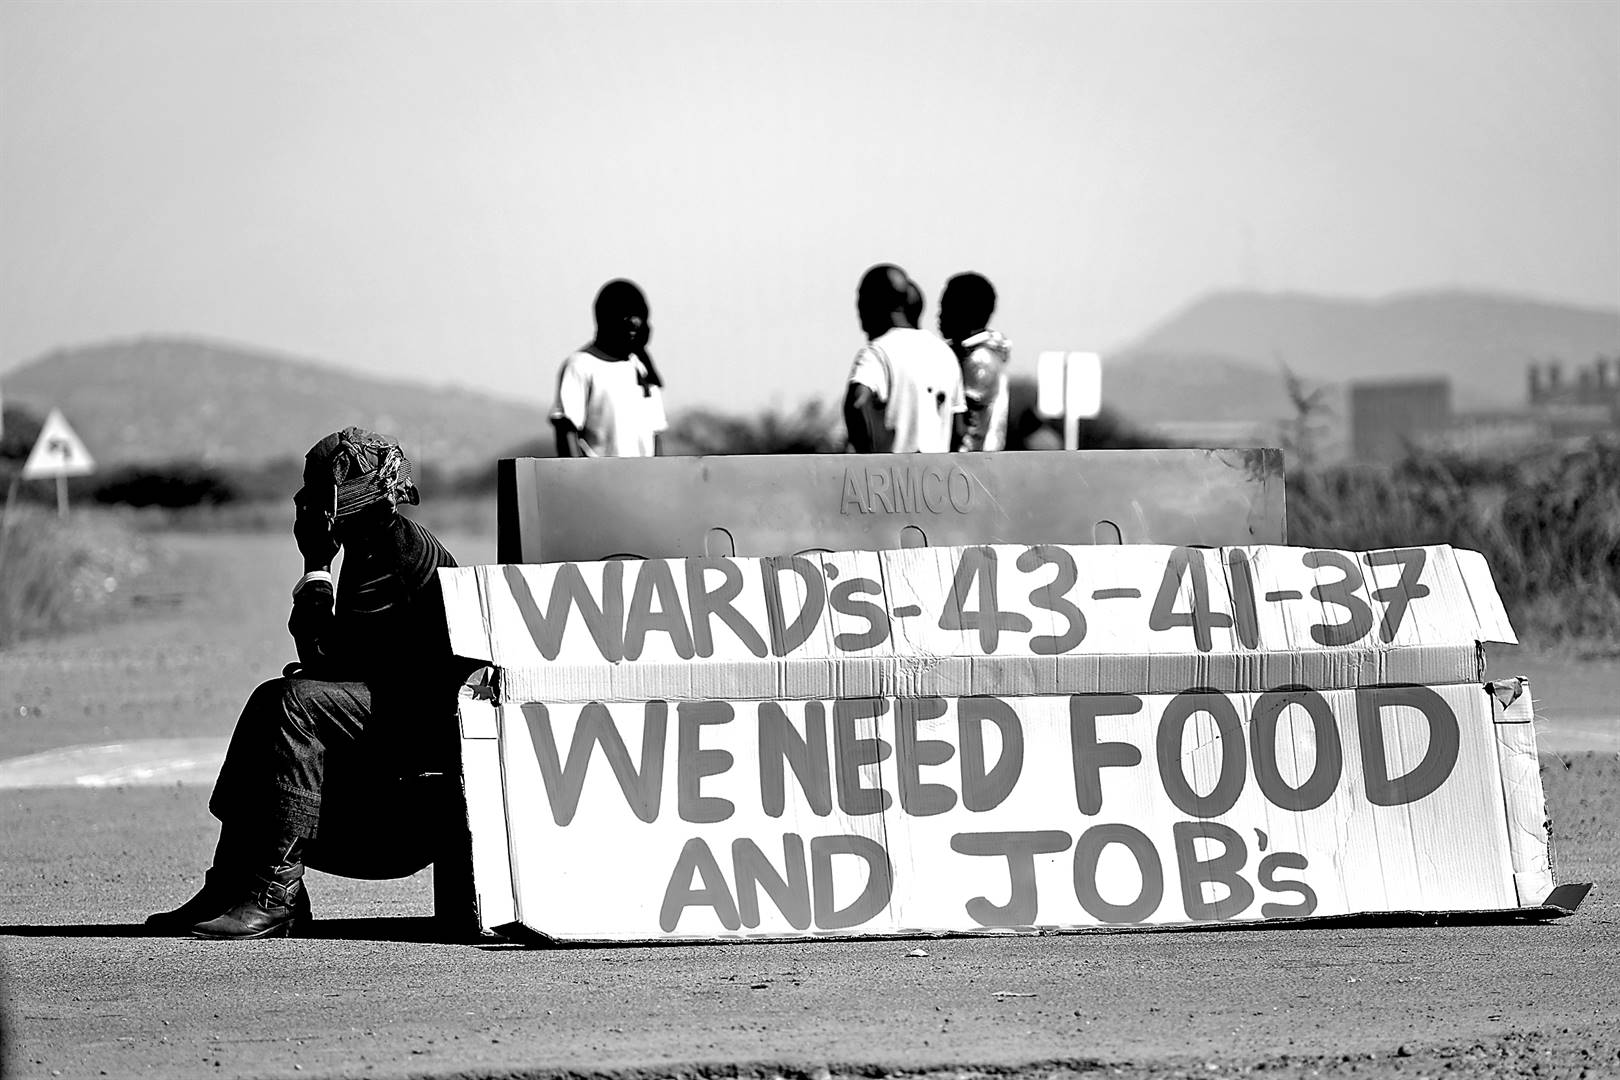 The aversion to the jobs that poor people can get, often because of a government-run public education system that failed them, continues to harm South Africa's poorest. Picture: Getty images